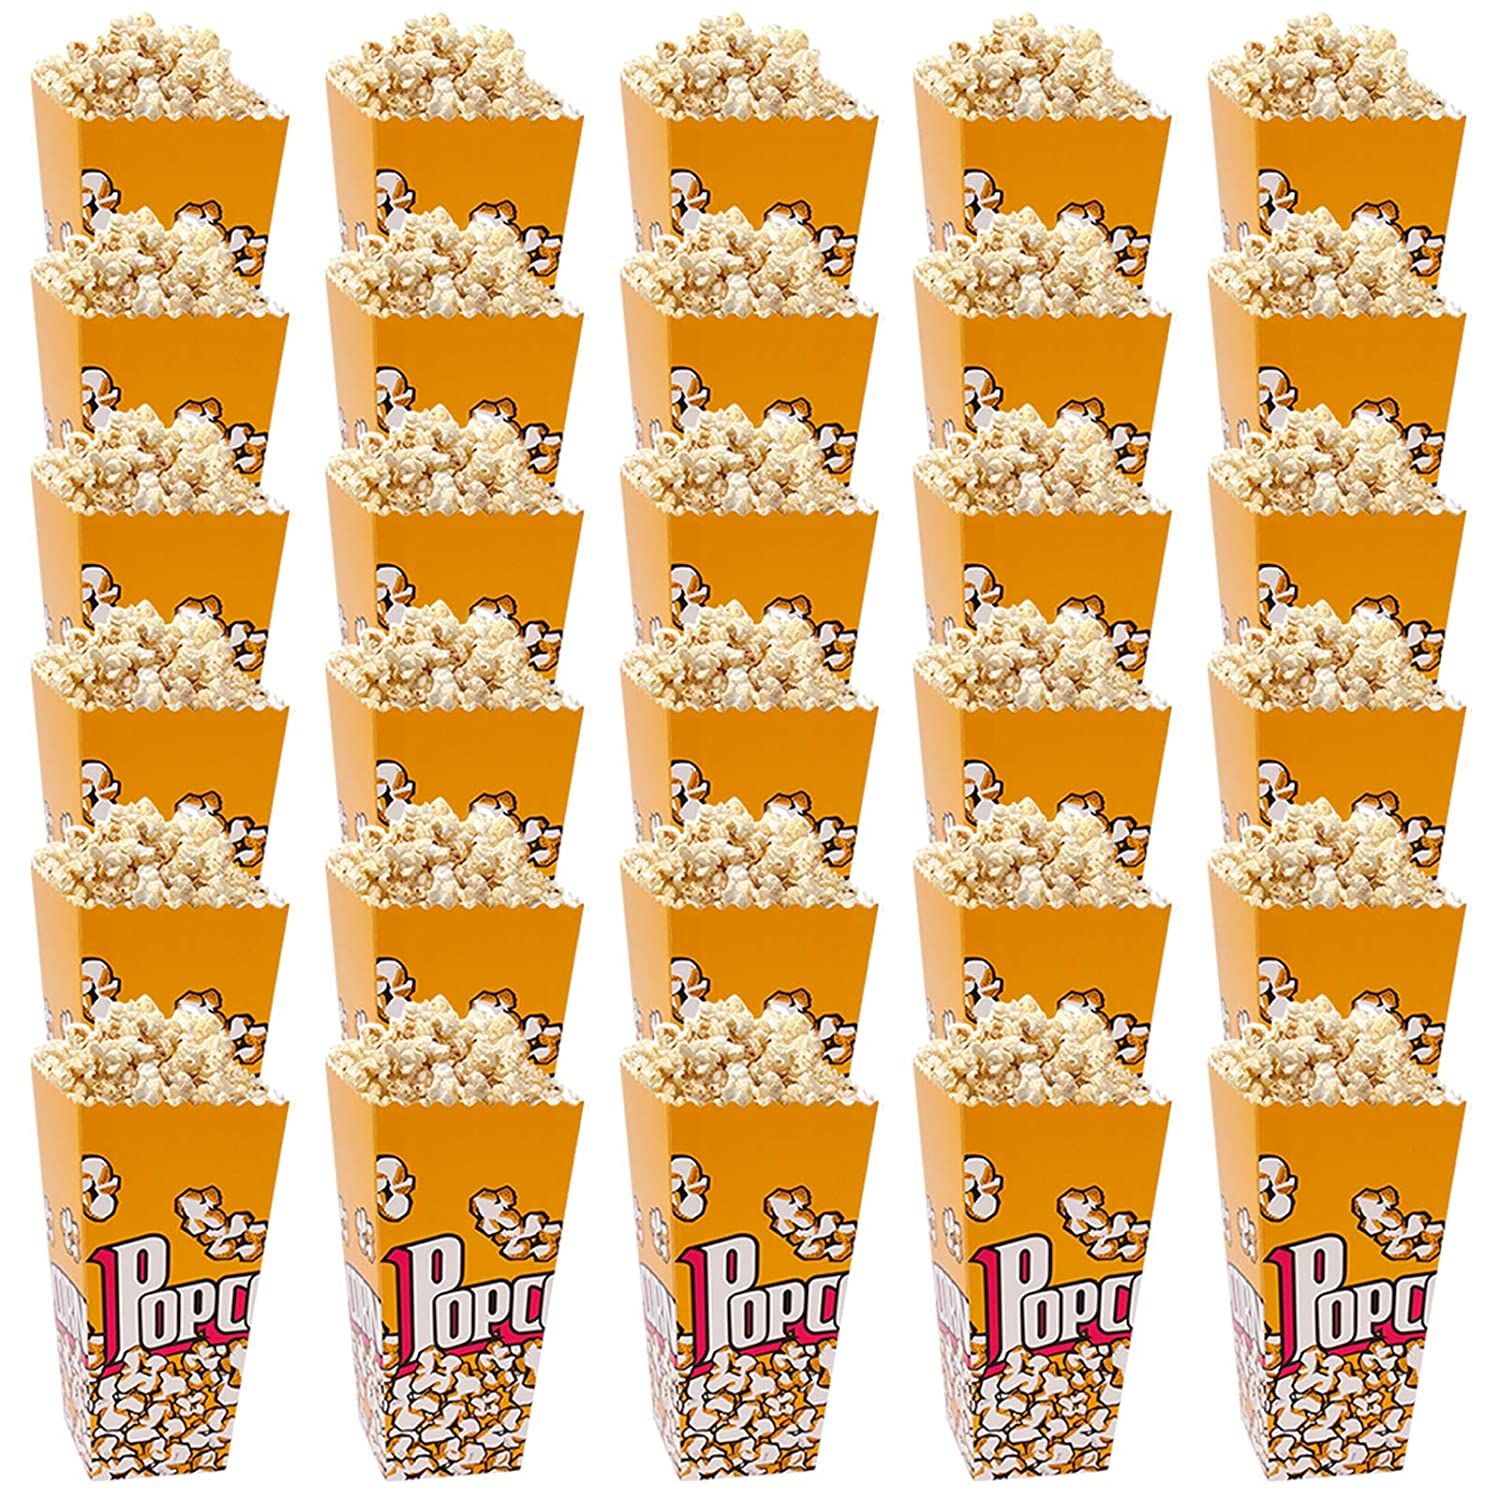 Popcorn Buckets, 32 OZ Popcorn Boxes 30 PCS Fashionable Yellow Popcorn Style 6.3×3.5×2.5 inches Reusable Large-Capacity Boxes in Movie Night or Carnival Party for Popcorn